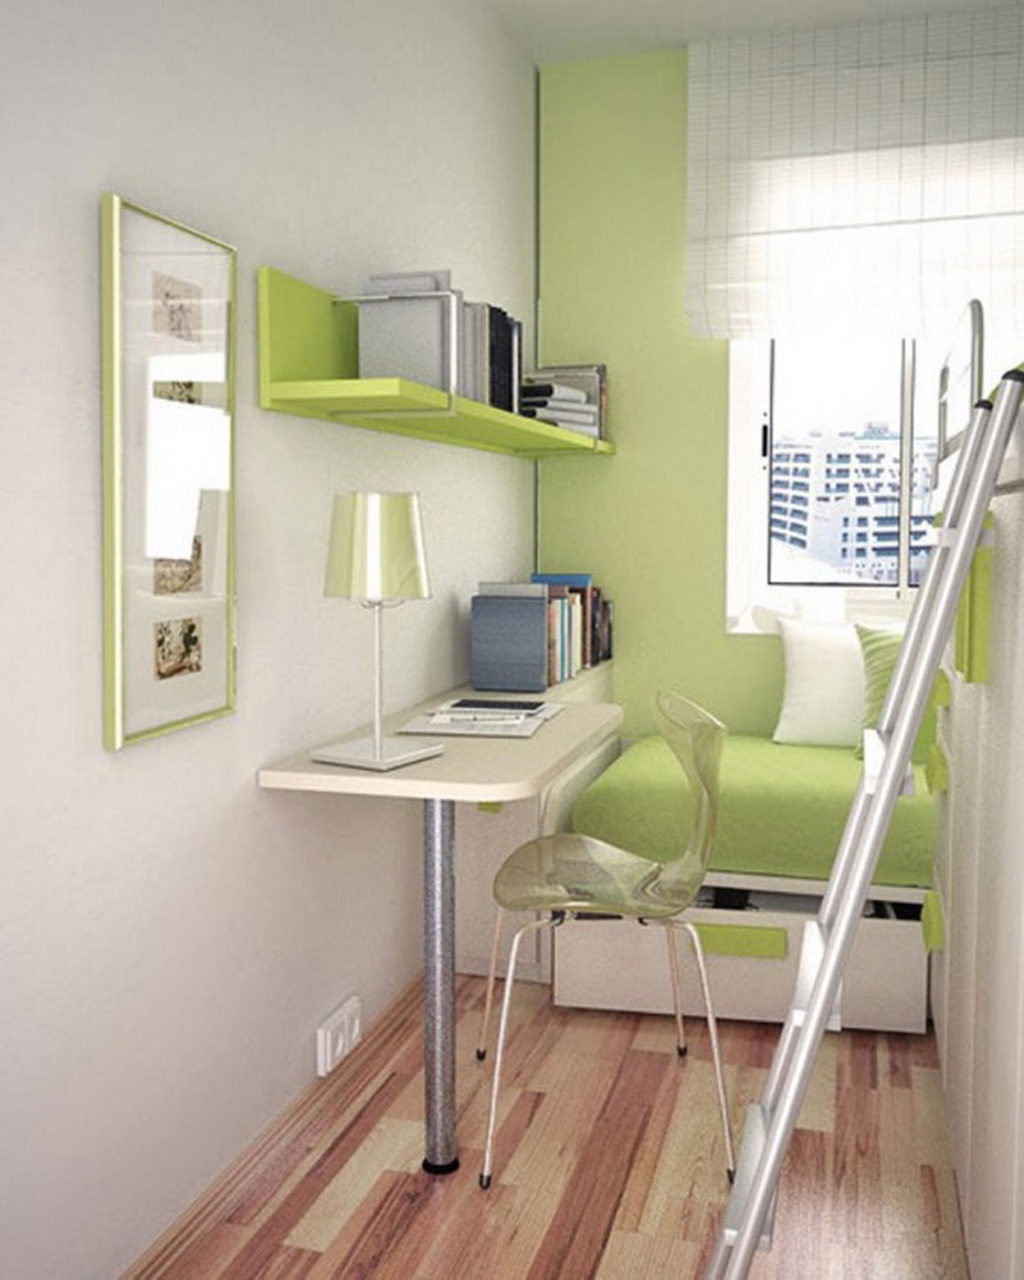 Kids Rooms Small Spaces Homedesign2work 10 Smart Design Ideas For Small Spaces By